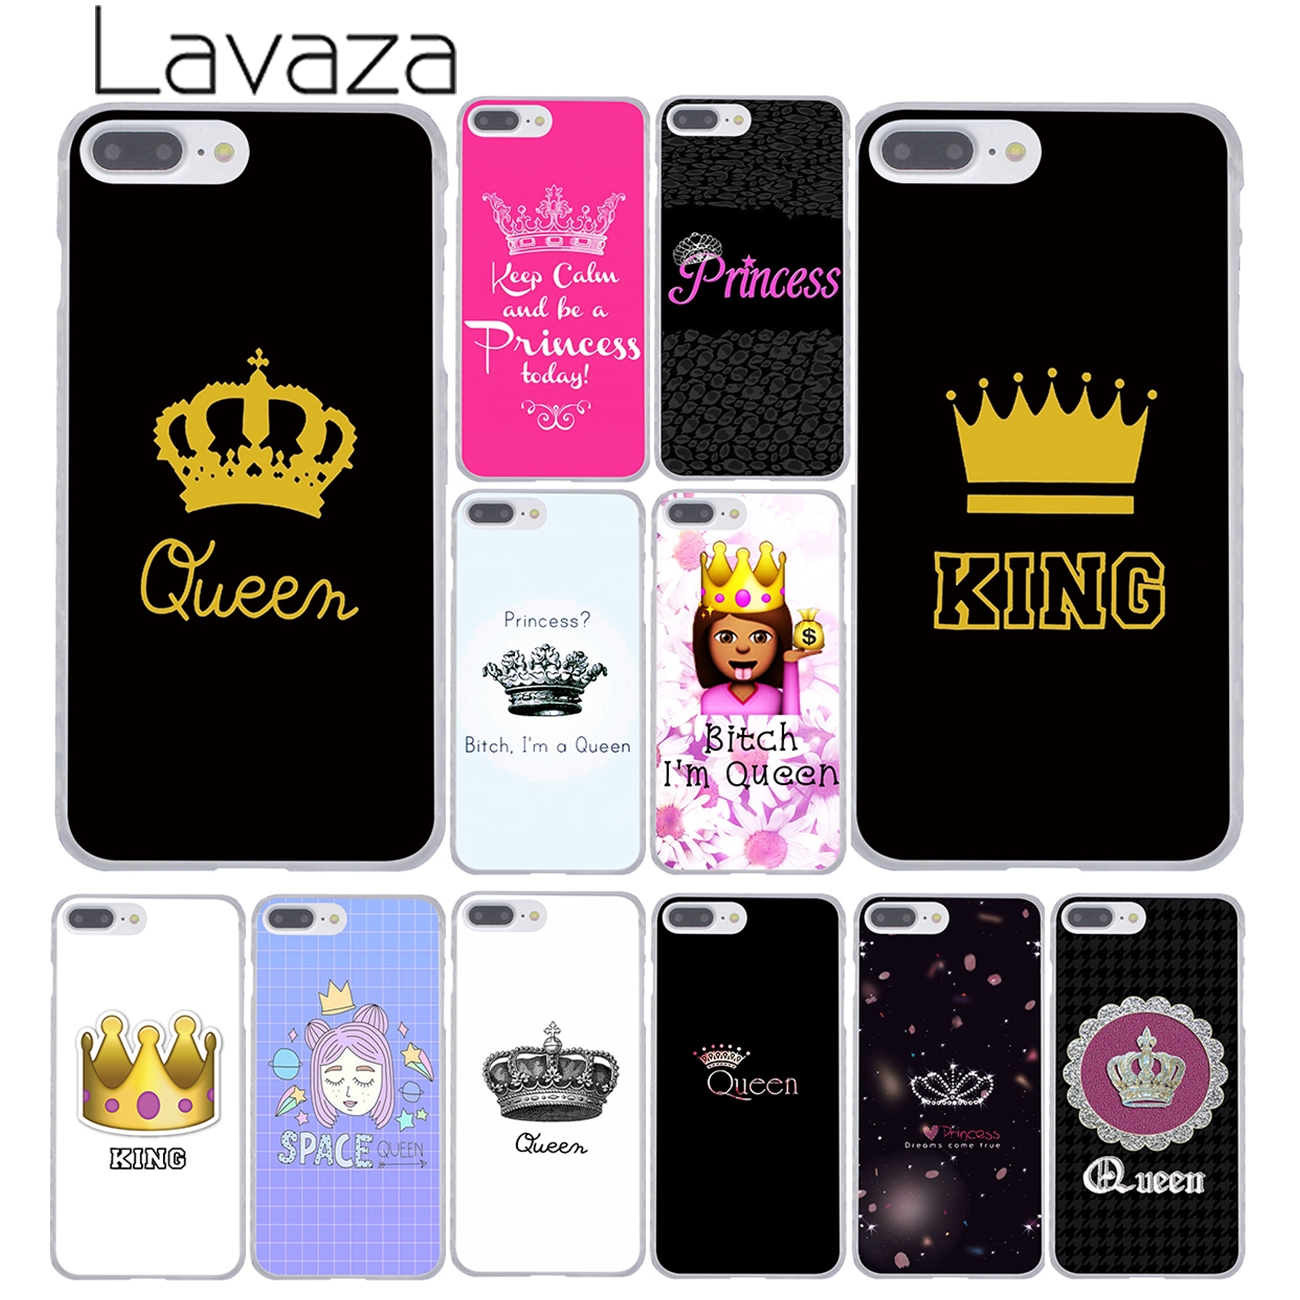 Lavaza Daisy Flower Bitch Jag är Queen Crown King PRINCESS Telefonväska för iPhone XR XS X 11 Pro Max 10 7 8 6 6S 5 5S SE 4S 4 Cover